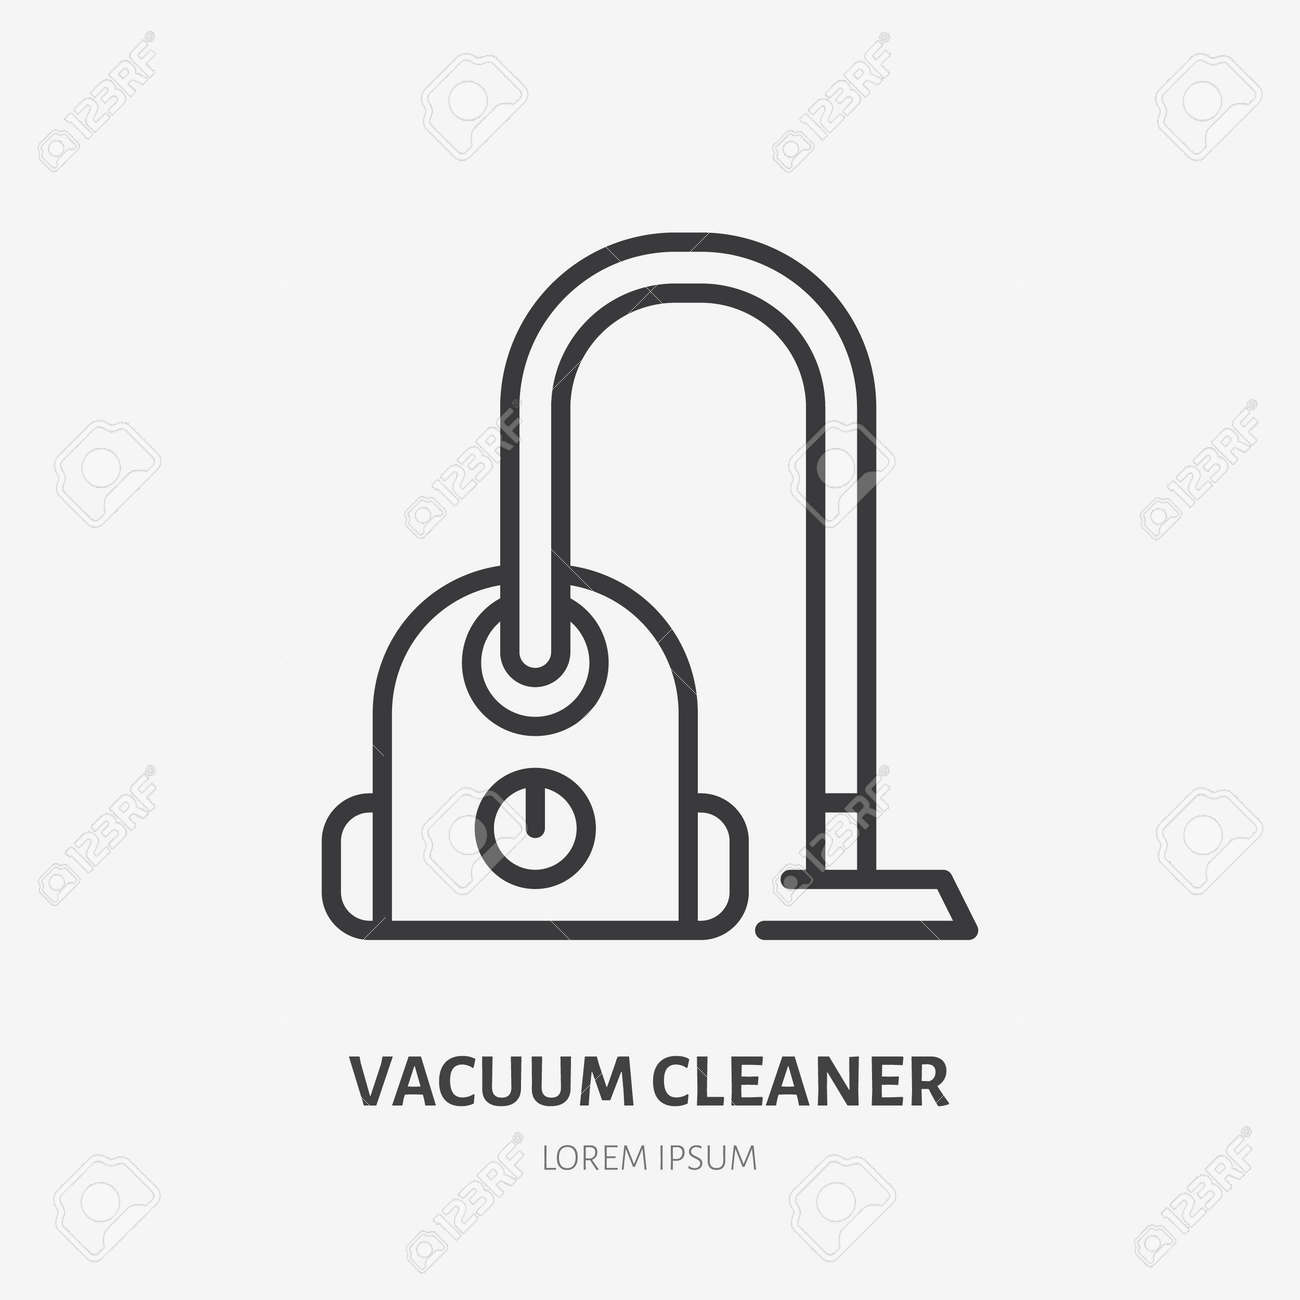 Vacuum cleaner flat line icon. Vector outline illustration of housekeeping equipment. - 163160940